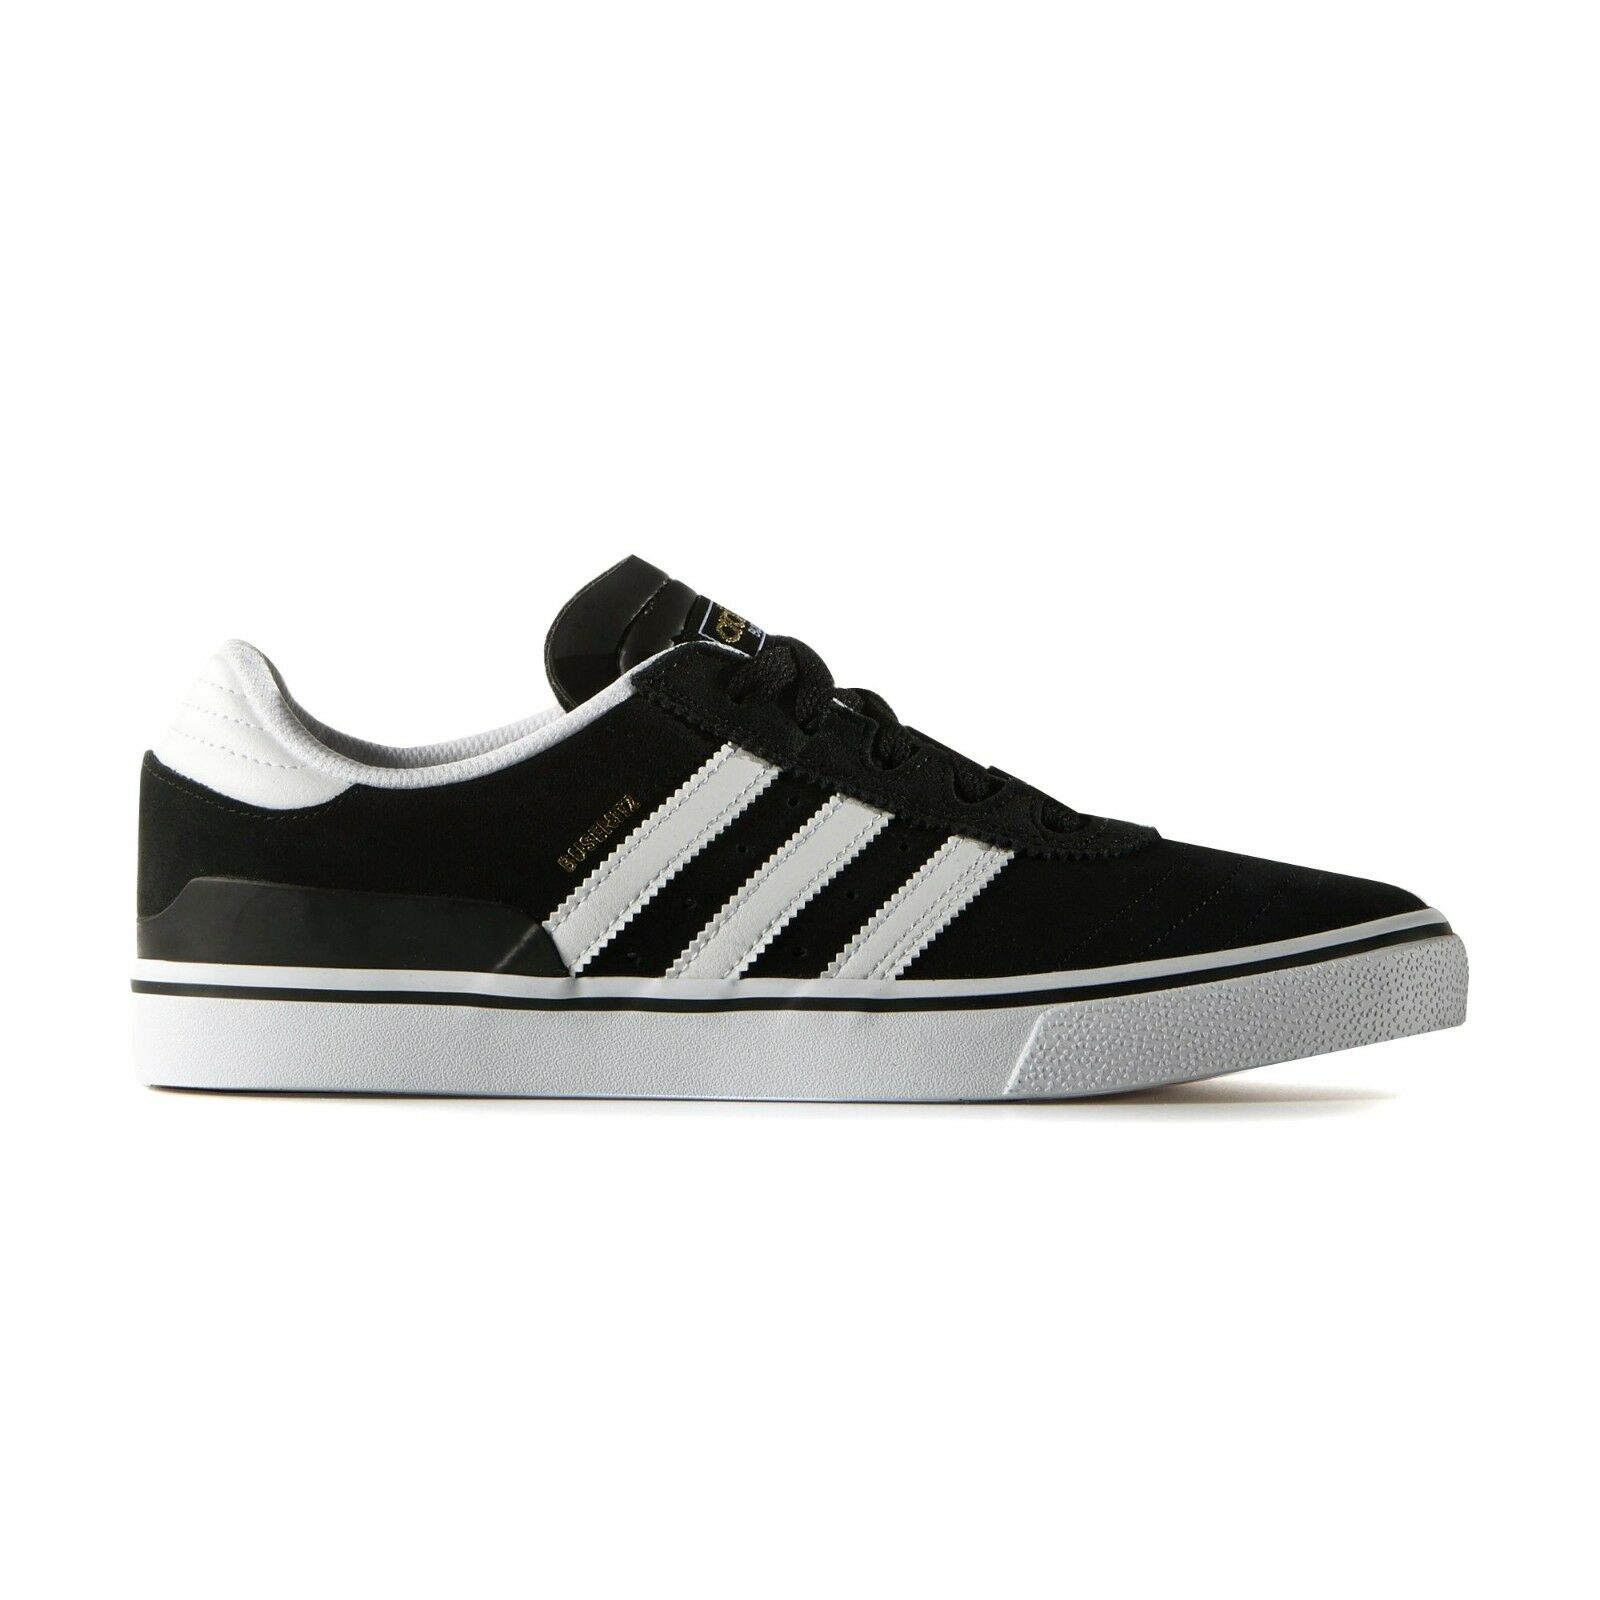 Adidas - Busenitz Vulc ADV | G65824  - Mens Skate Shoes | Black / White